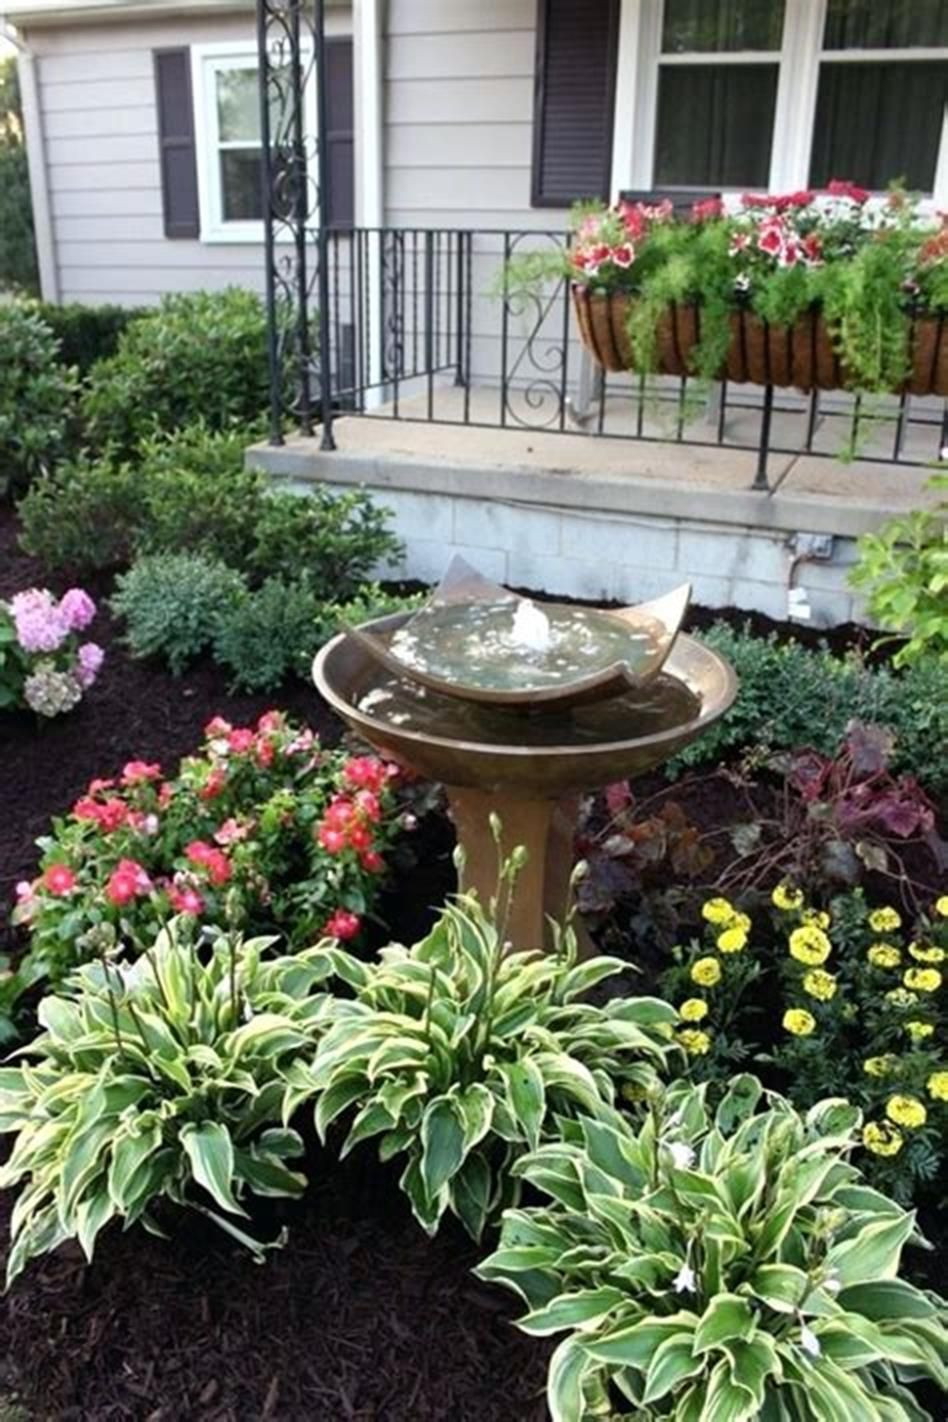 45 Best And Cheap Simple Front Yard Landscaping Ideas Homenthusiastic Front Yard Landscaping Design Cheap Landscaping Ideas Cheap Landscaping Ideas For Front Yard